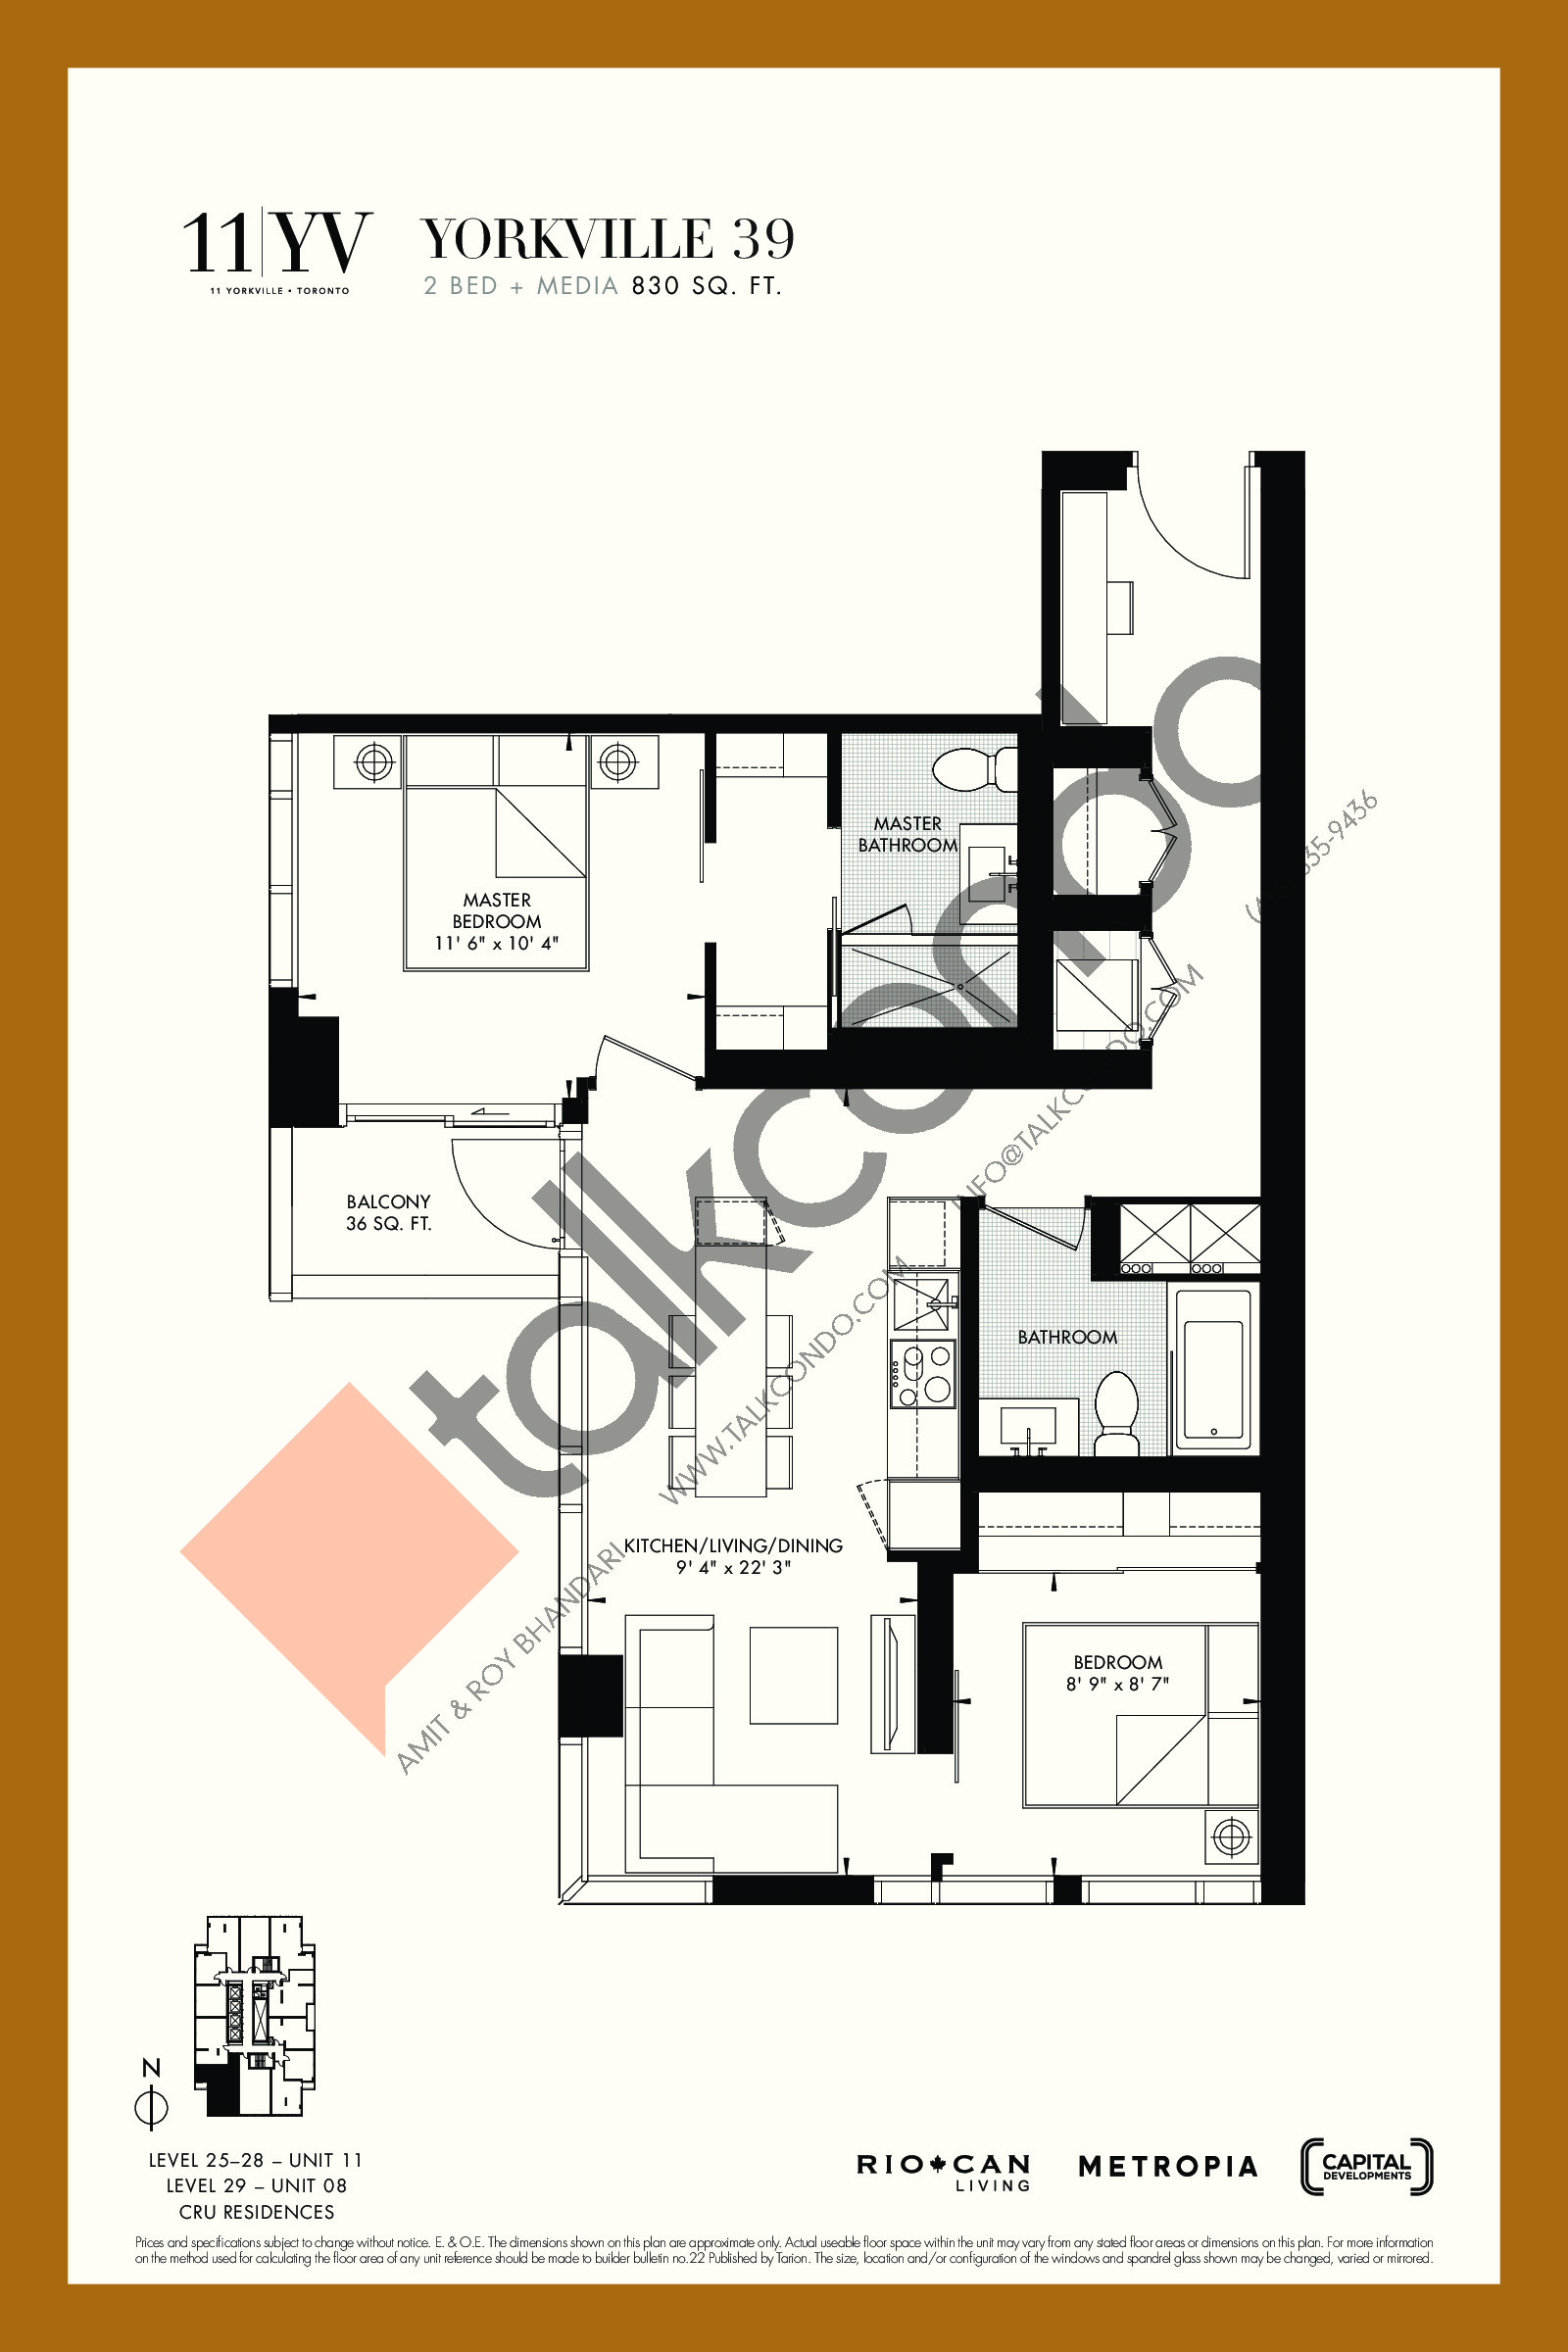 Yorkville 39 Floor Plan at 11YV Condos - 830 sq.ft